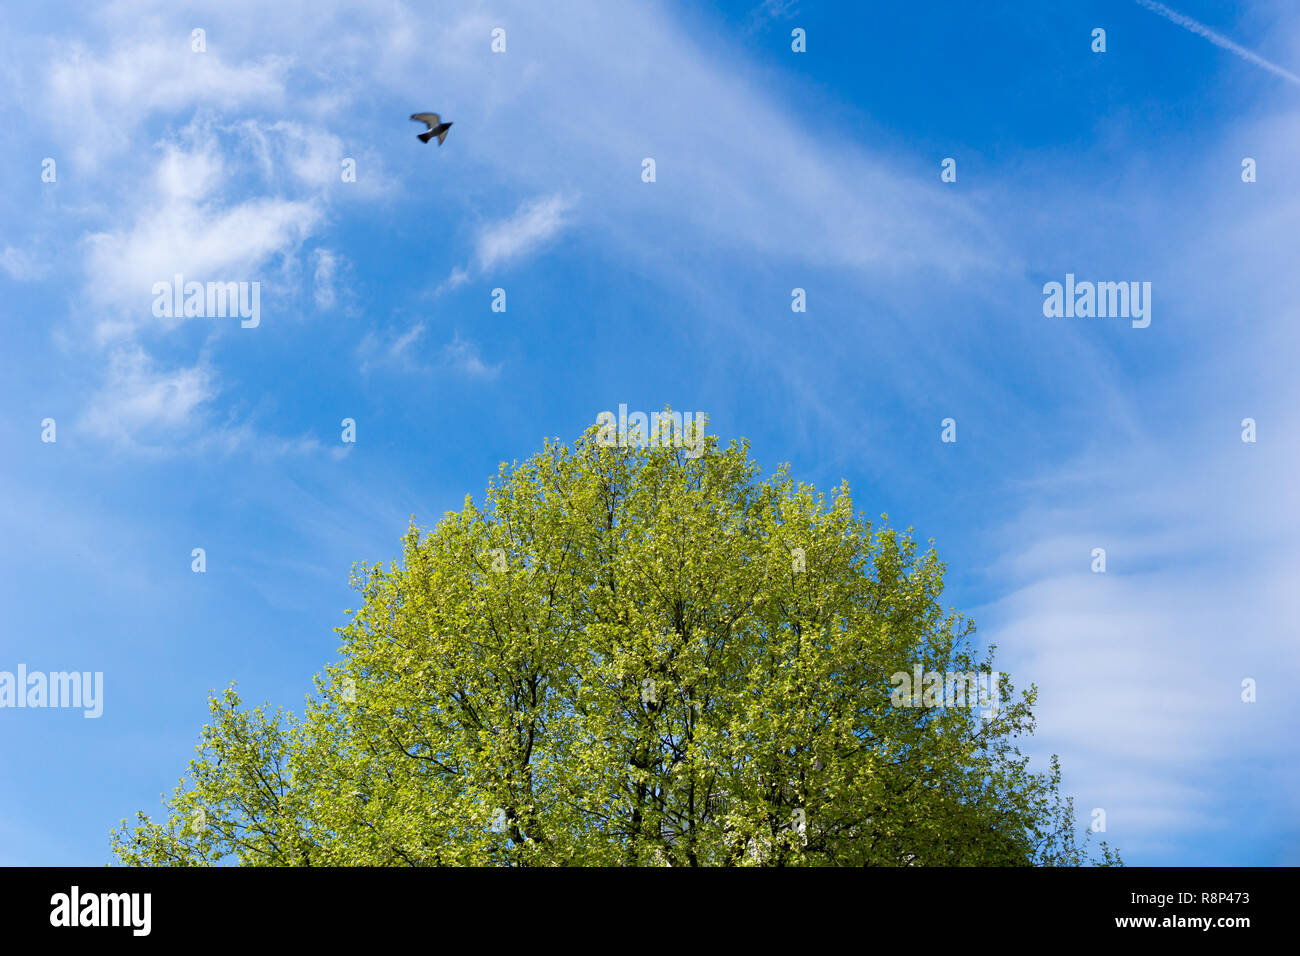 Flowering green Tree Tops in fron of a blue Sky on a fresh Morning. - Stock Image